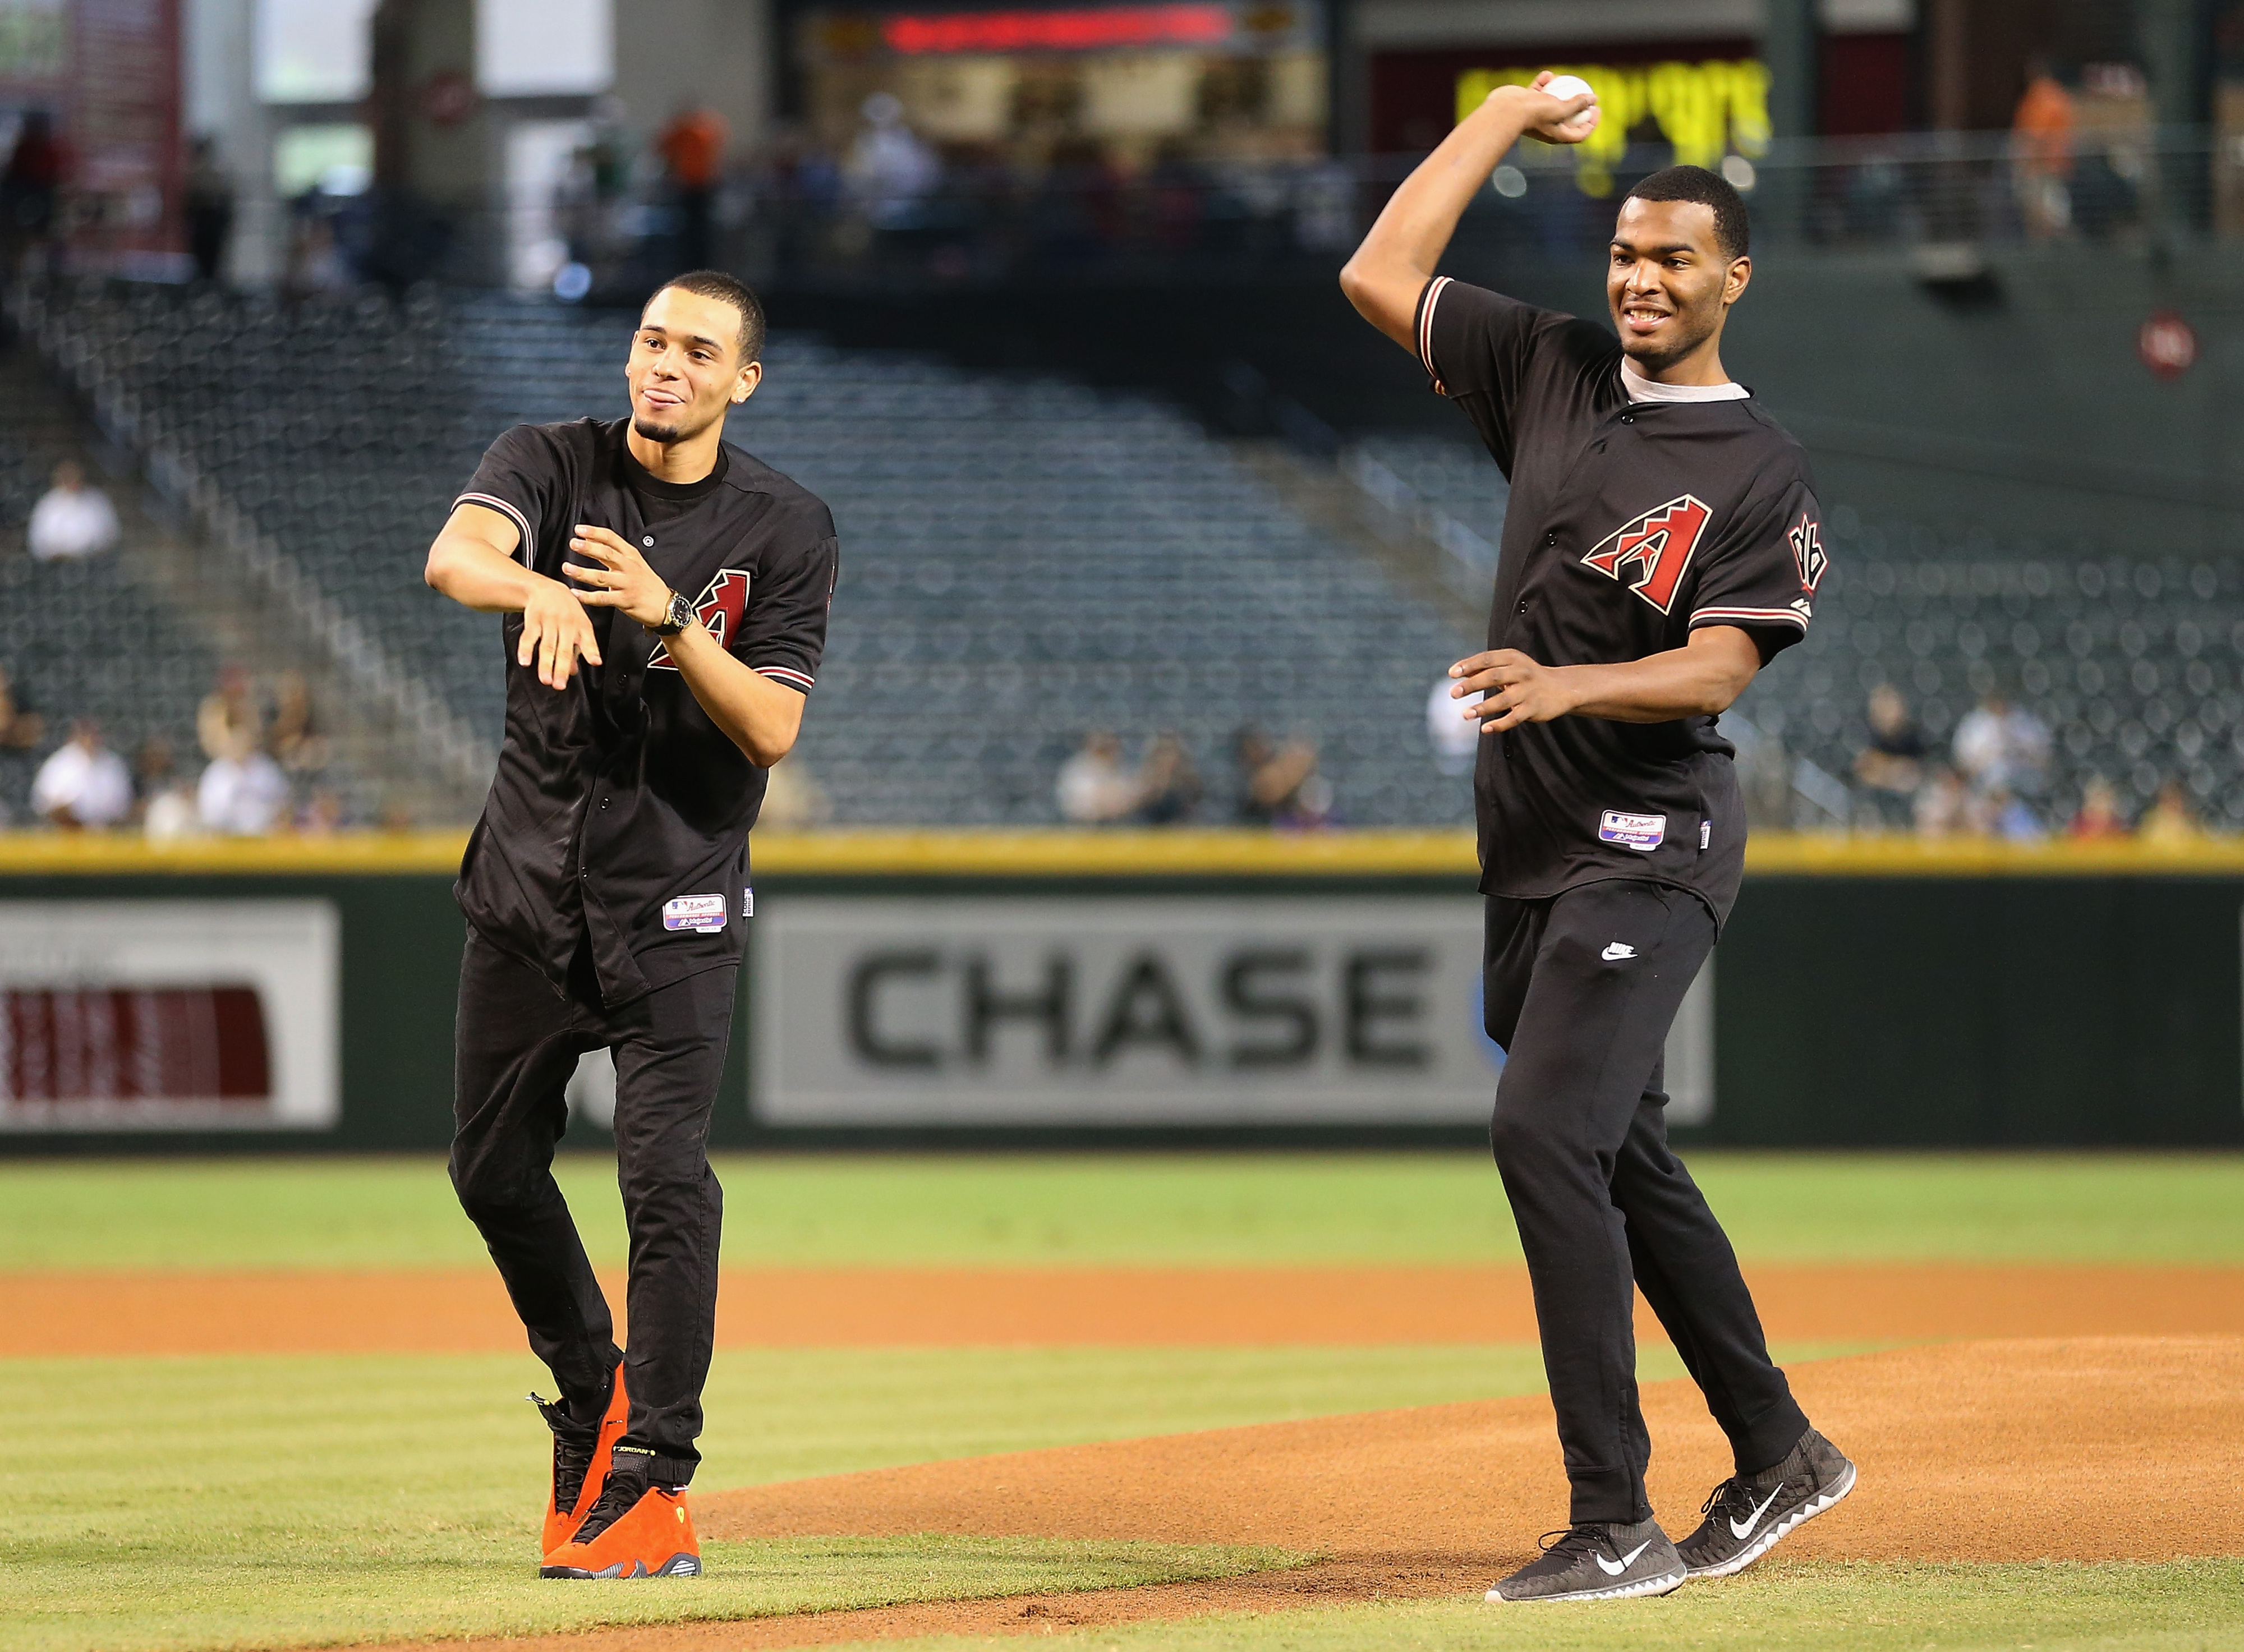 No, don't worry, the team won't be optioning these guys to the Diamondbacks anytime soon.